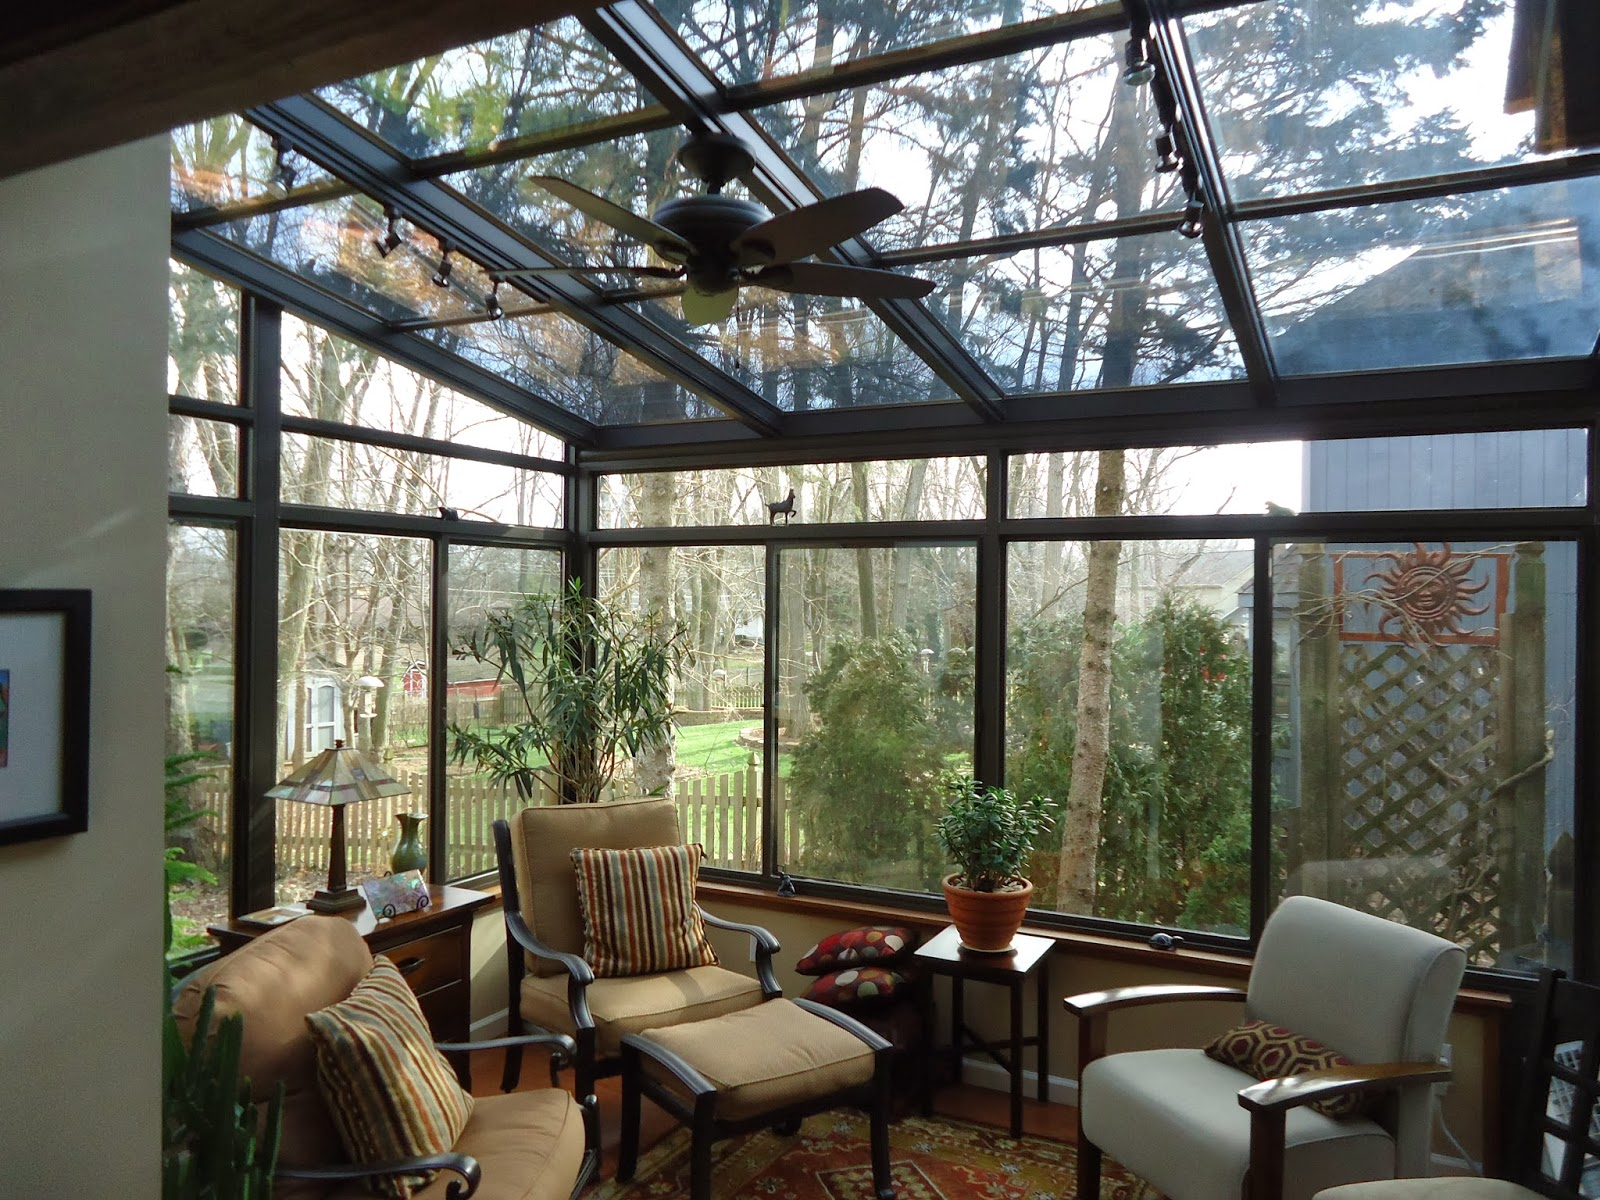 Dallas Beewindow Four Seasons Sunroom Addition All Glass